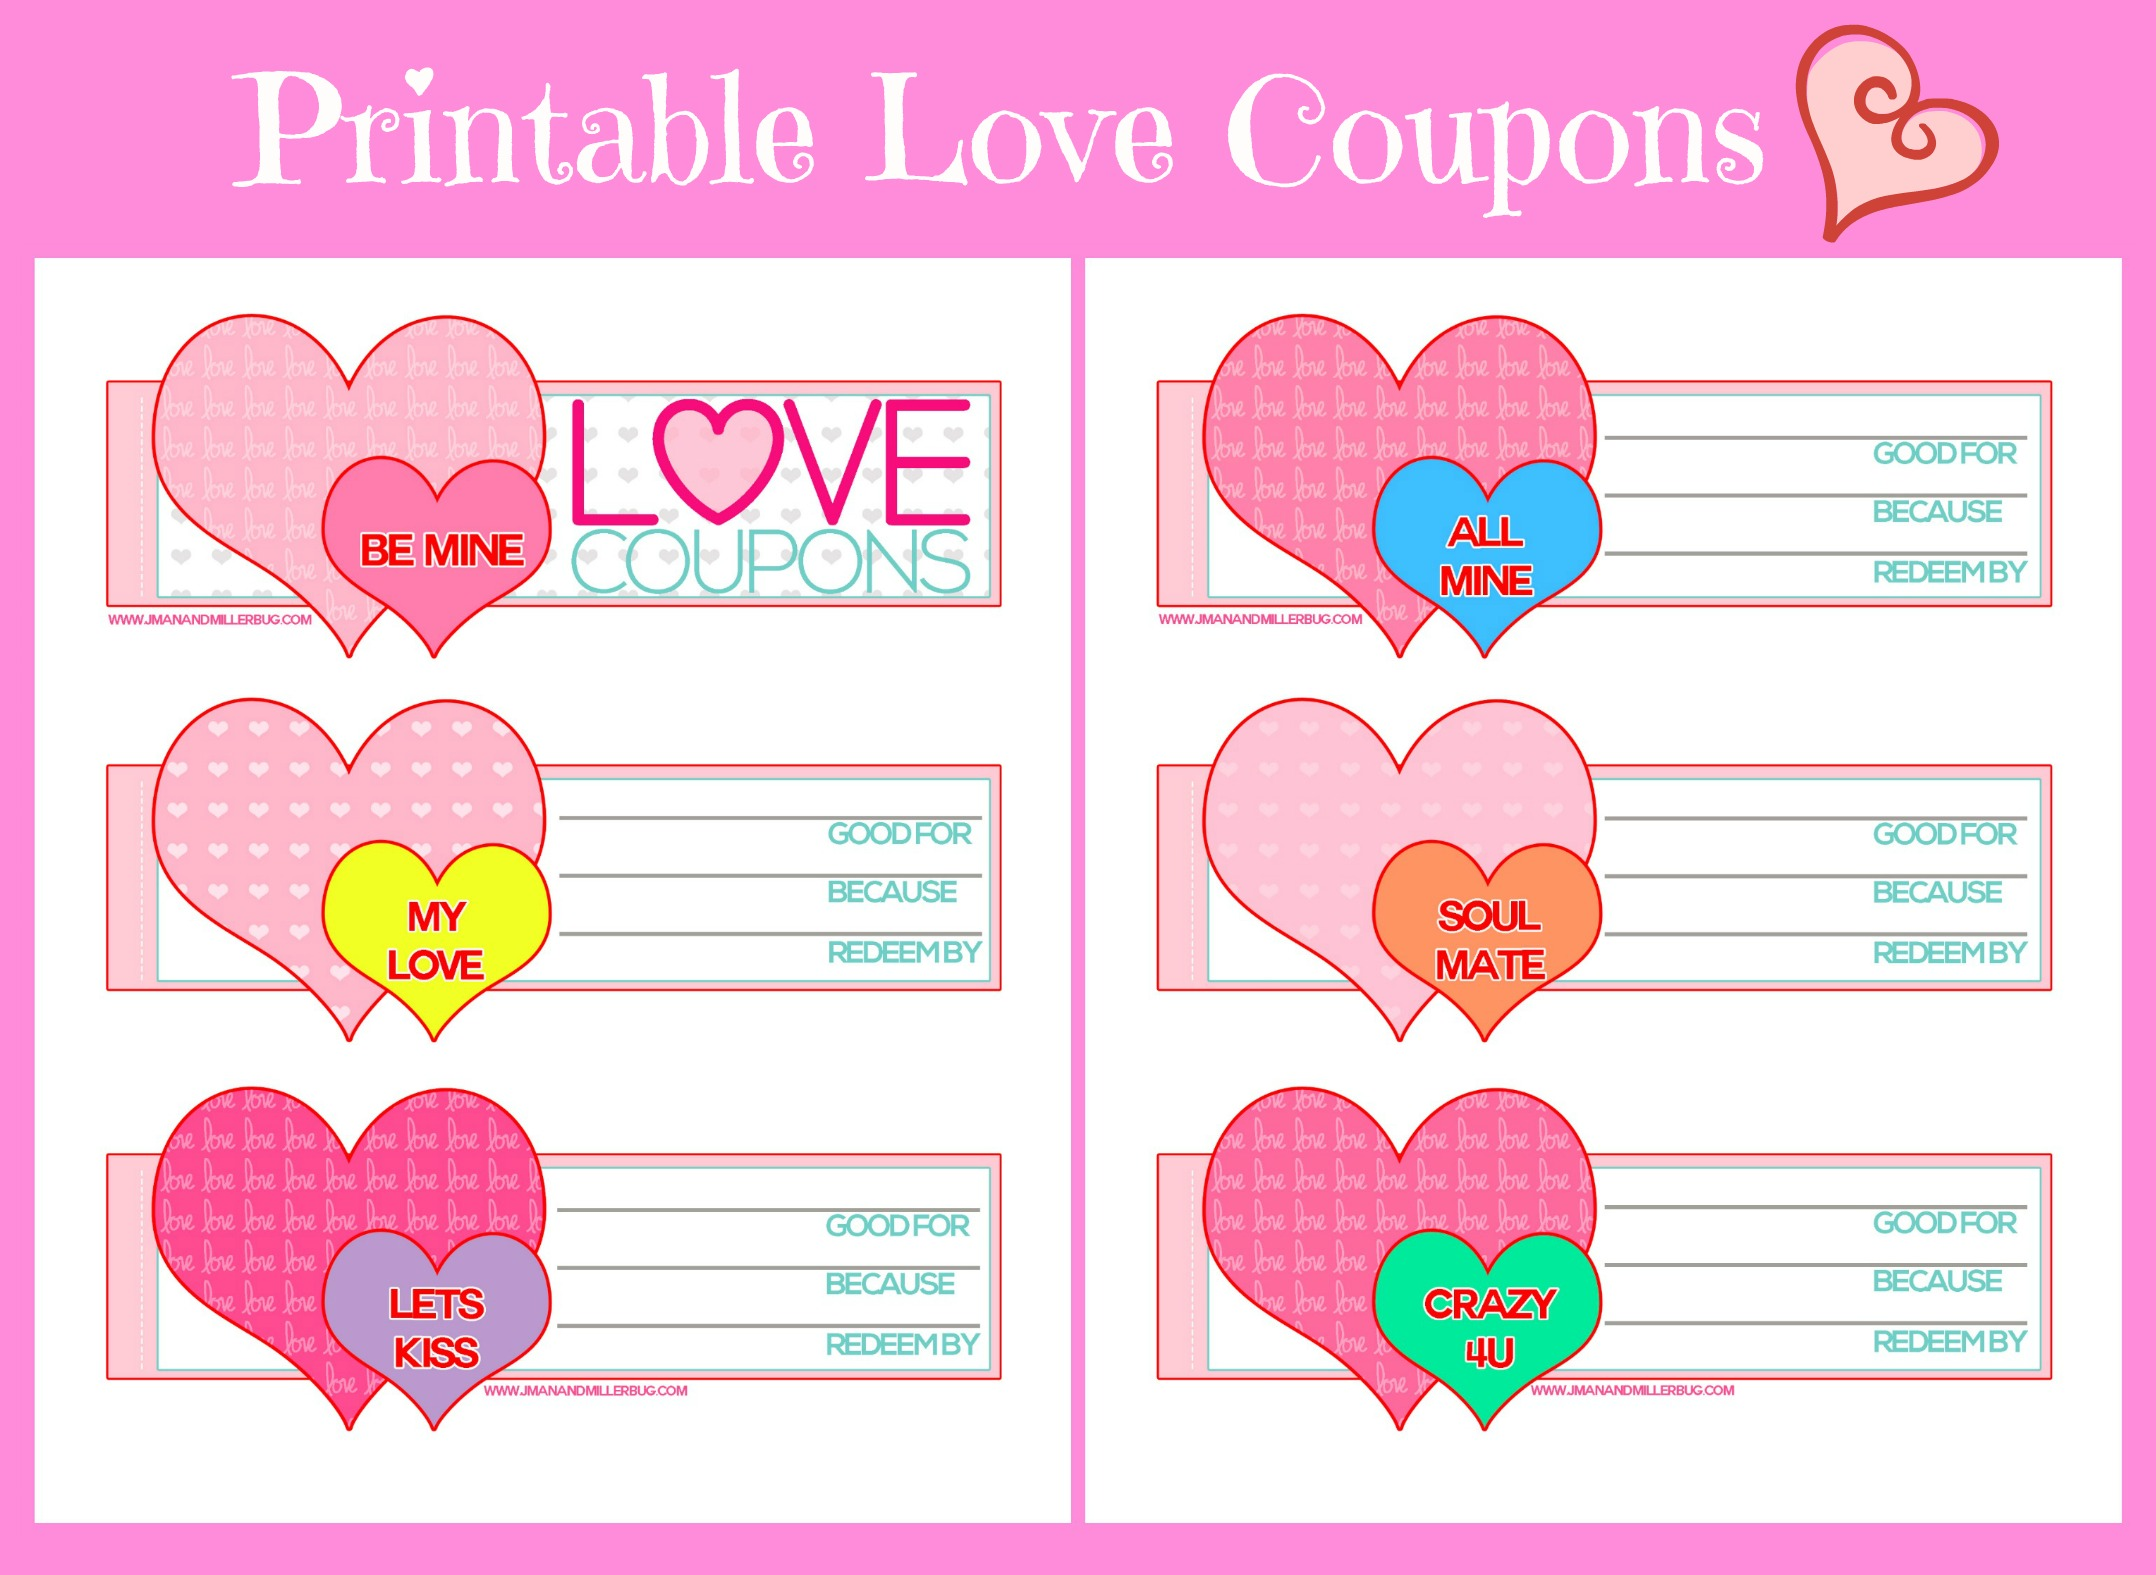 Reconnect With A Romantic Date Night Amp Printable Love